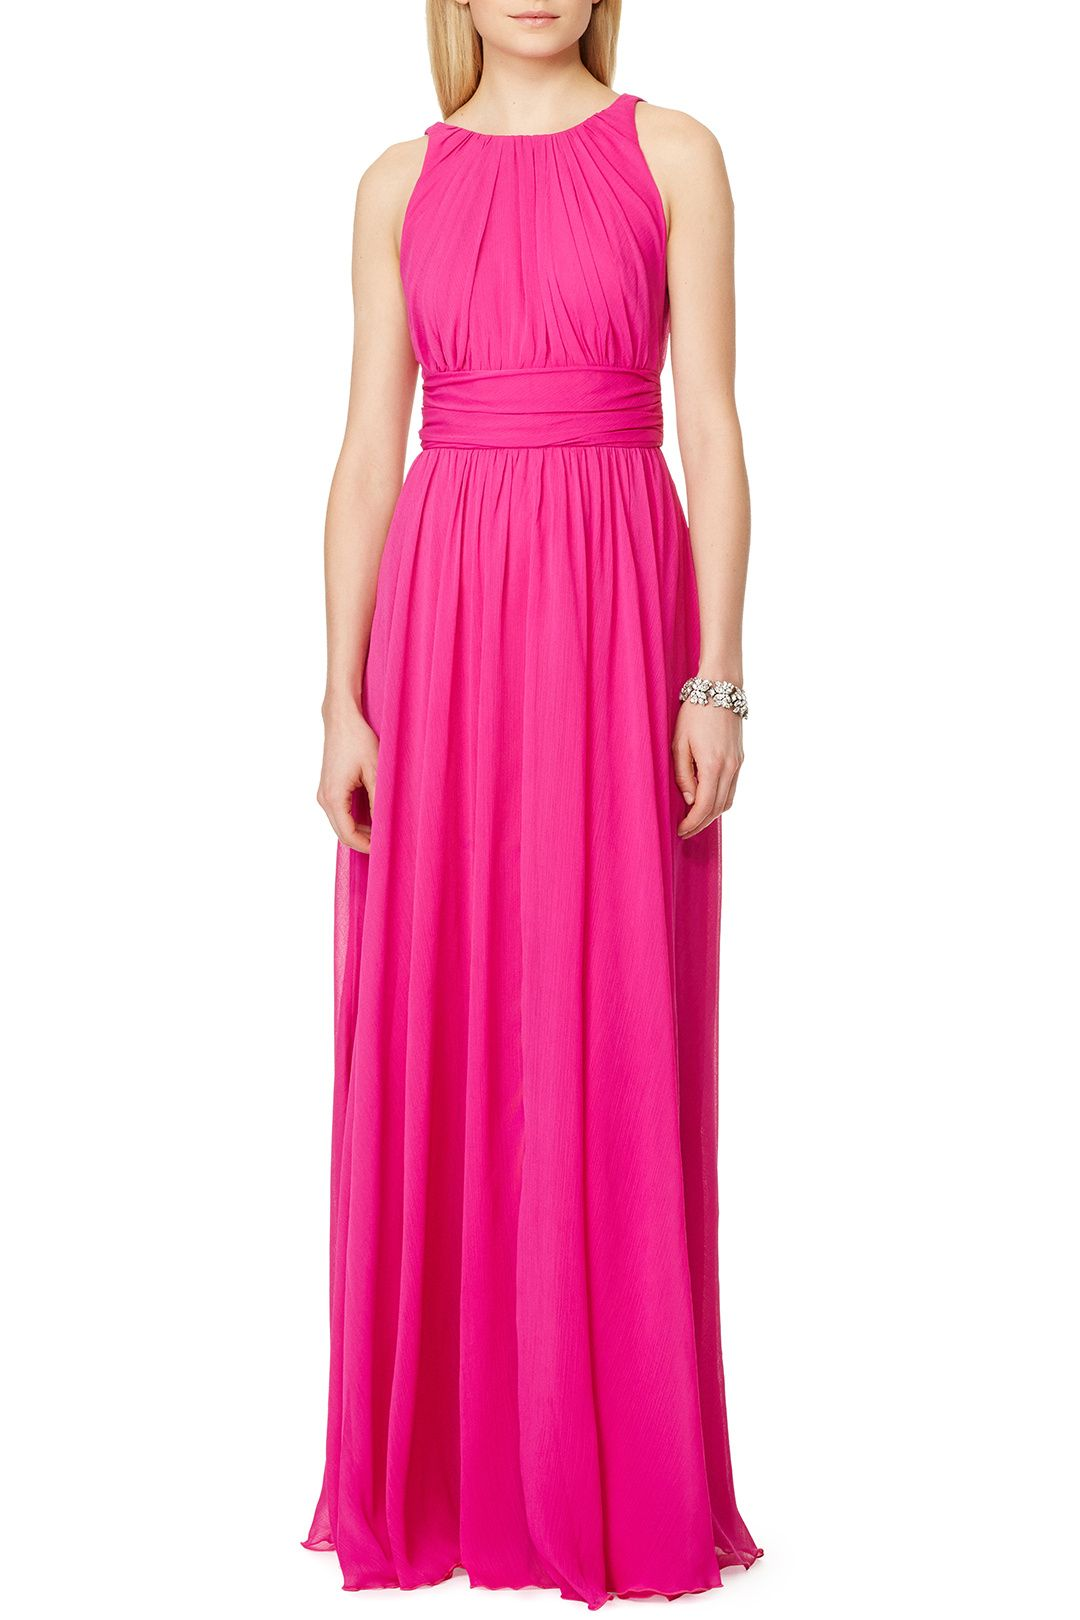 Rent Corundum Tourmaline Gown by Badgley Mischka for $70 only at ...